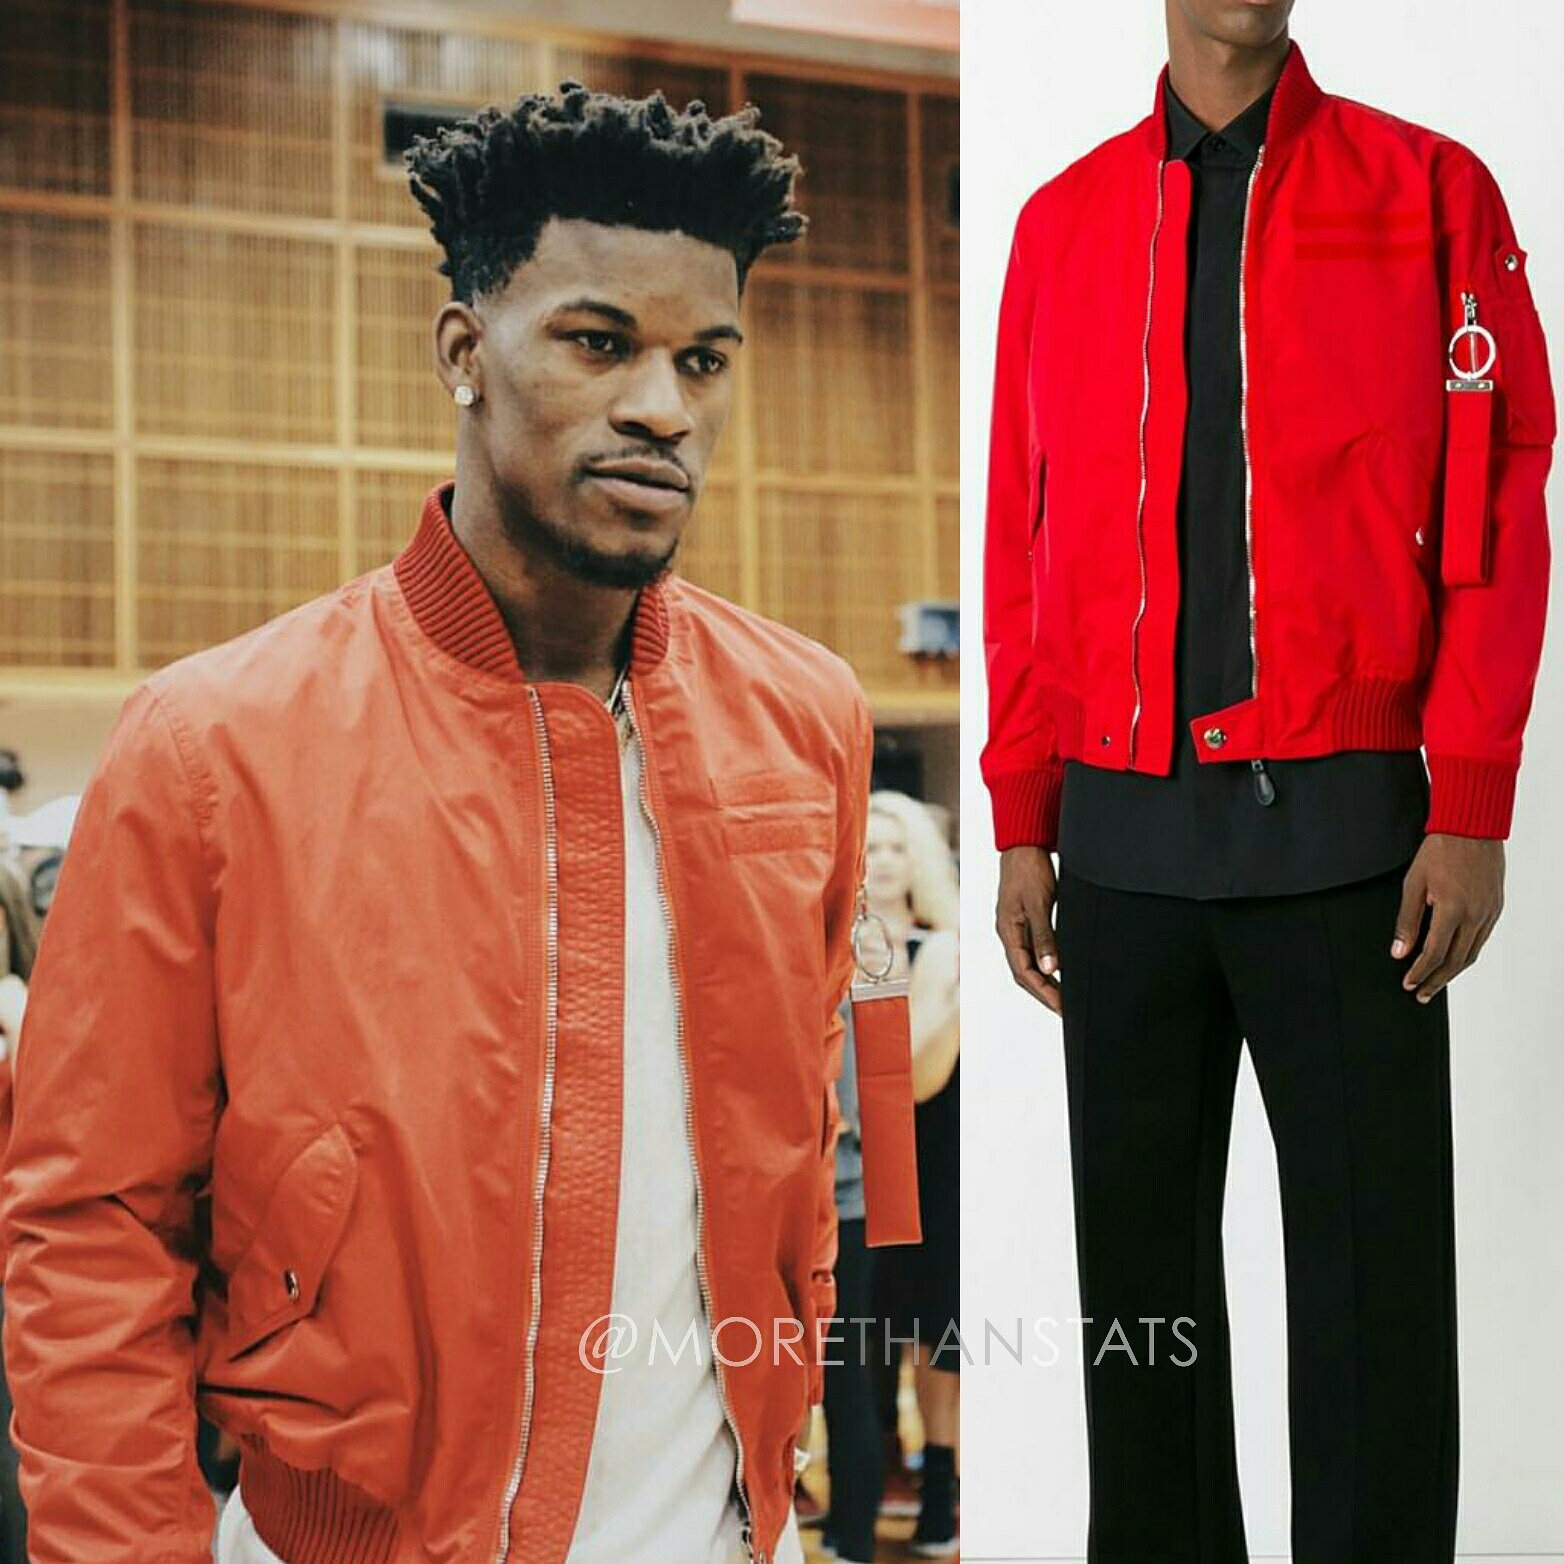 Jimmy Butler's Givenchy Nylon Men's Fashion Jacket